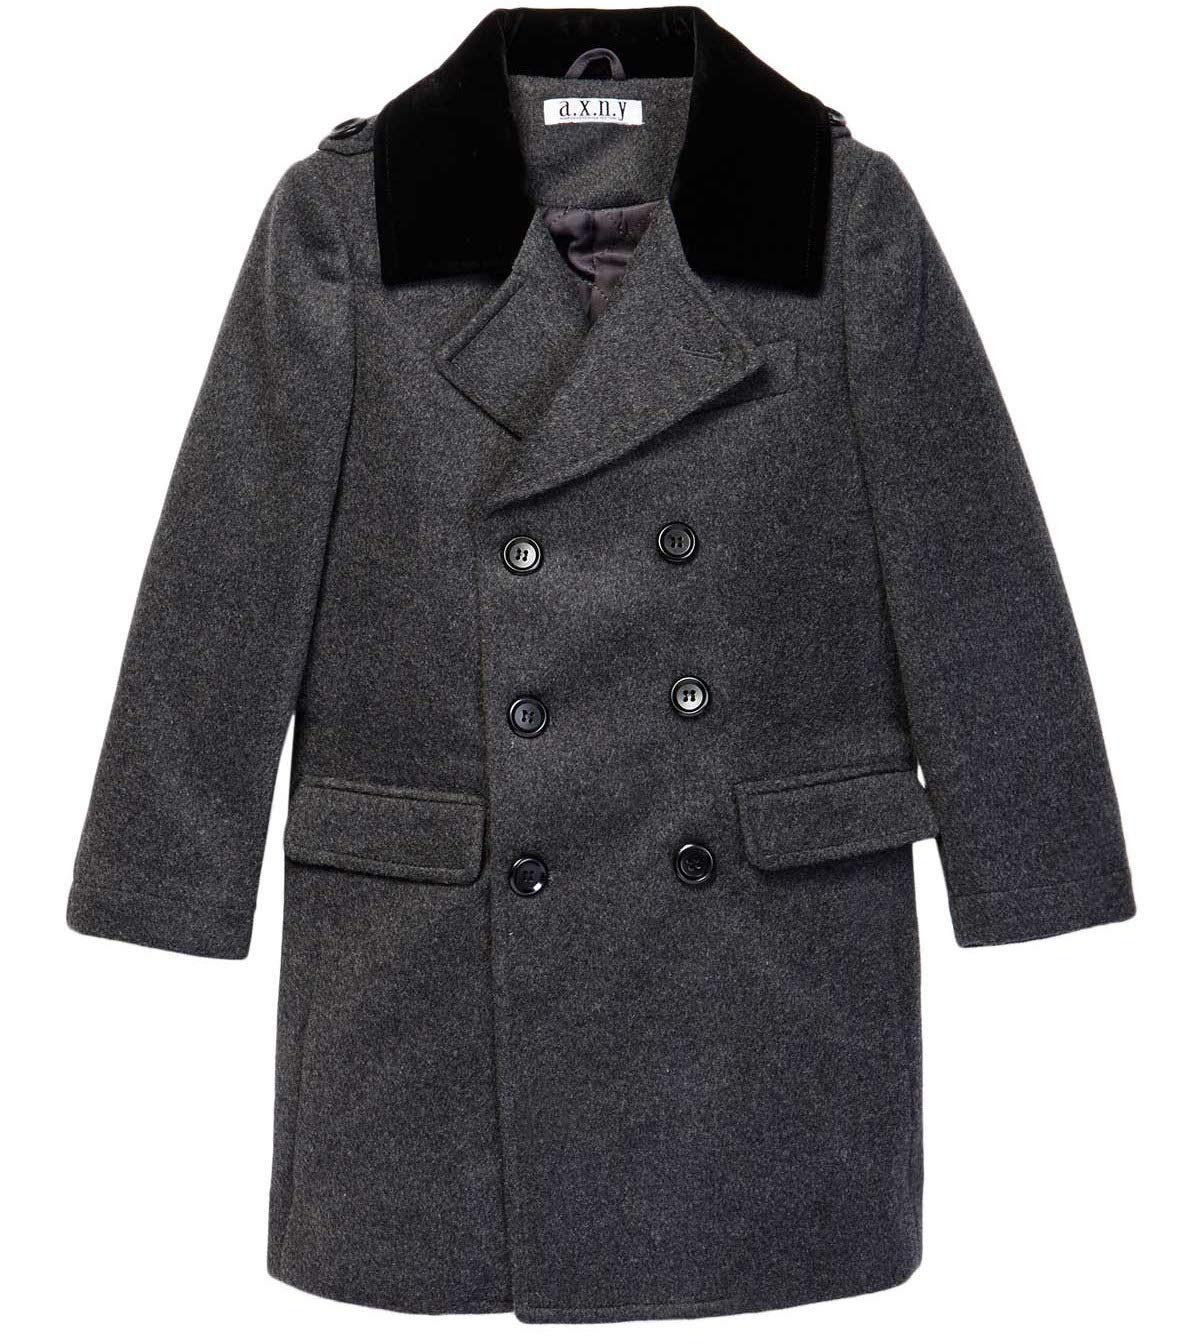 Isaac Mizrahi Boy's CT1011 2-20 Double Breasted Wool Blend Peacoat - Charcoal - 14